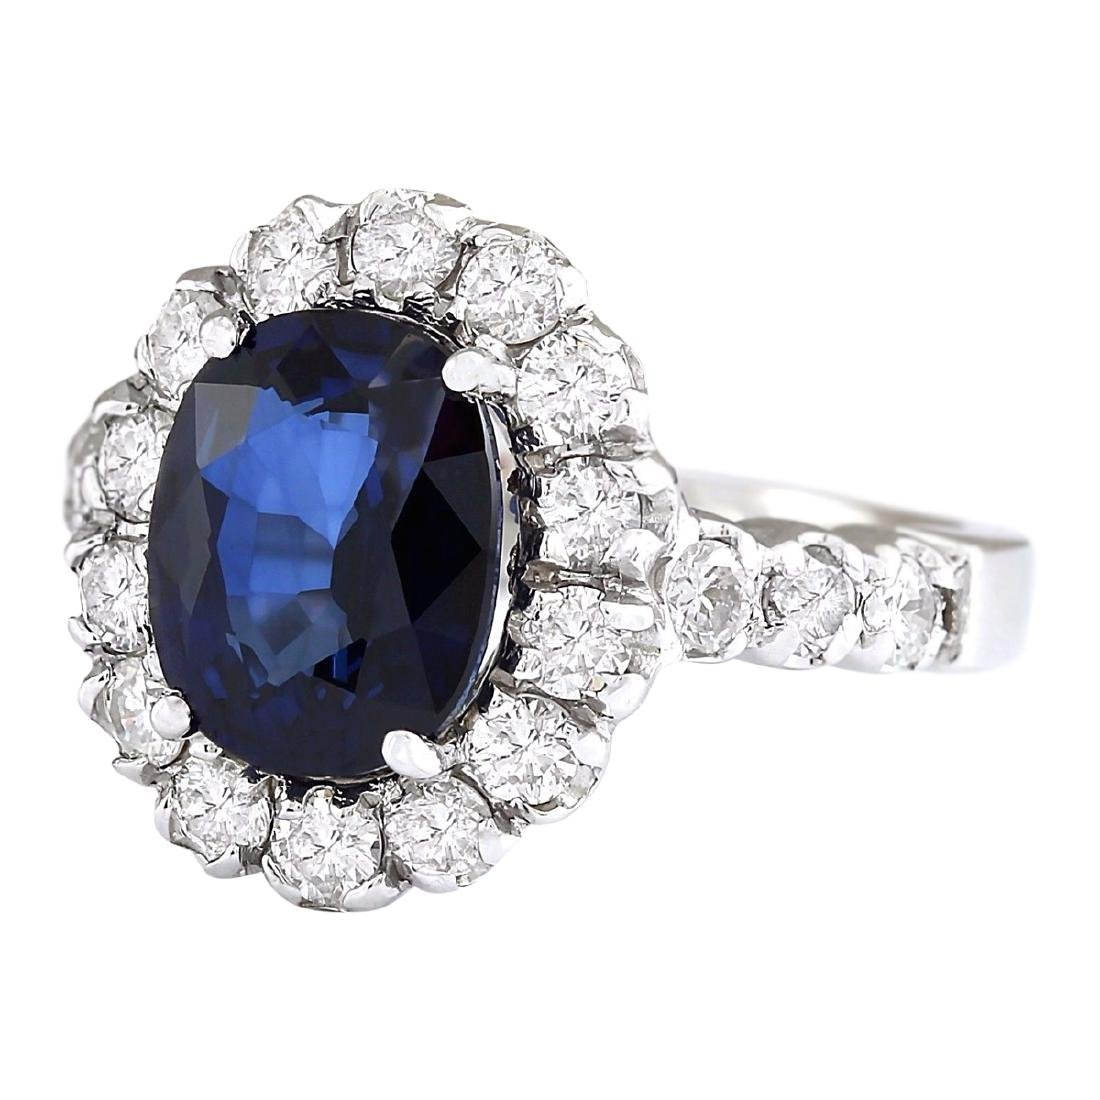 3.35 CTW Natural Blue Sapphire And Diamond Ring In 18K - 2